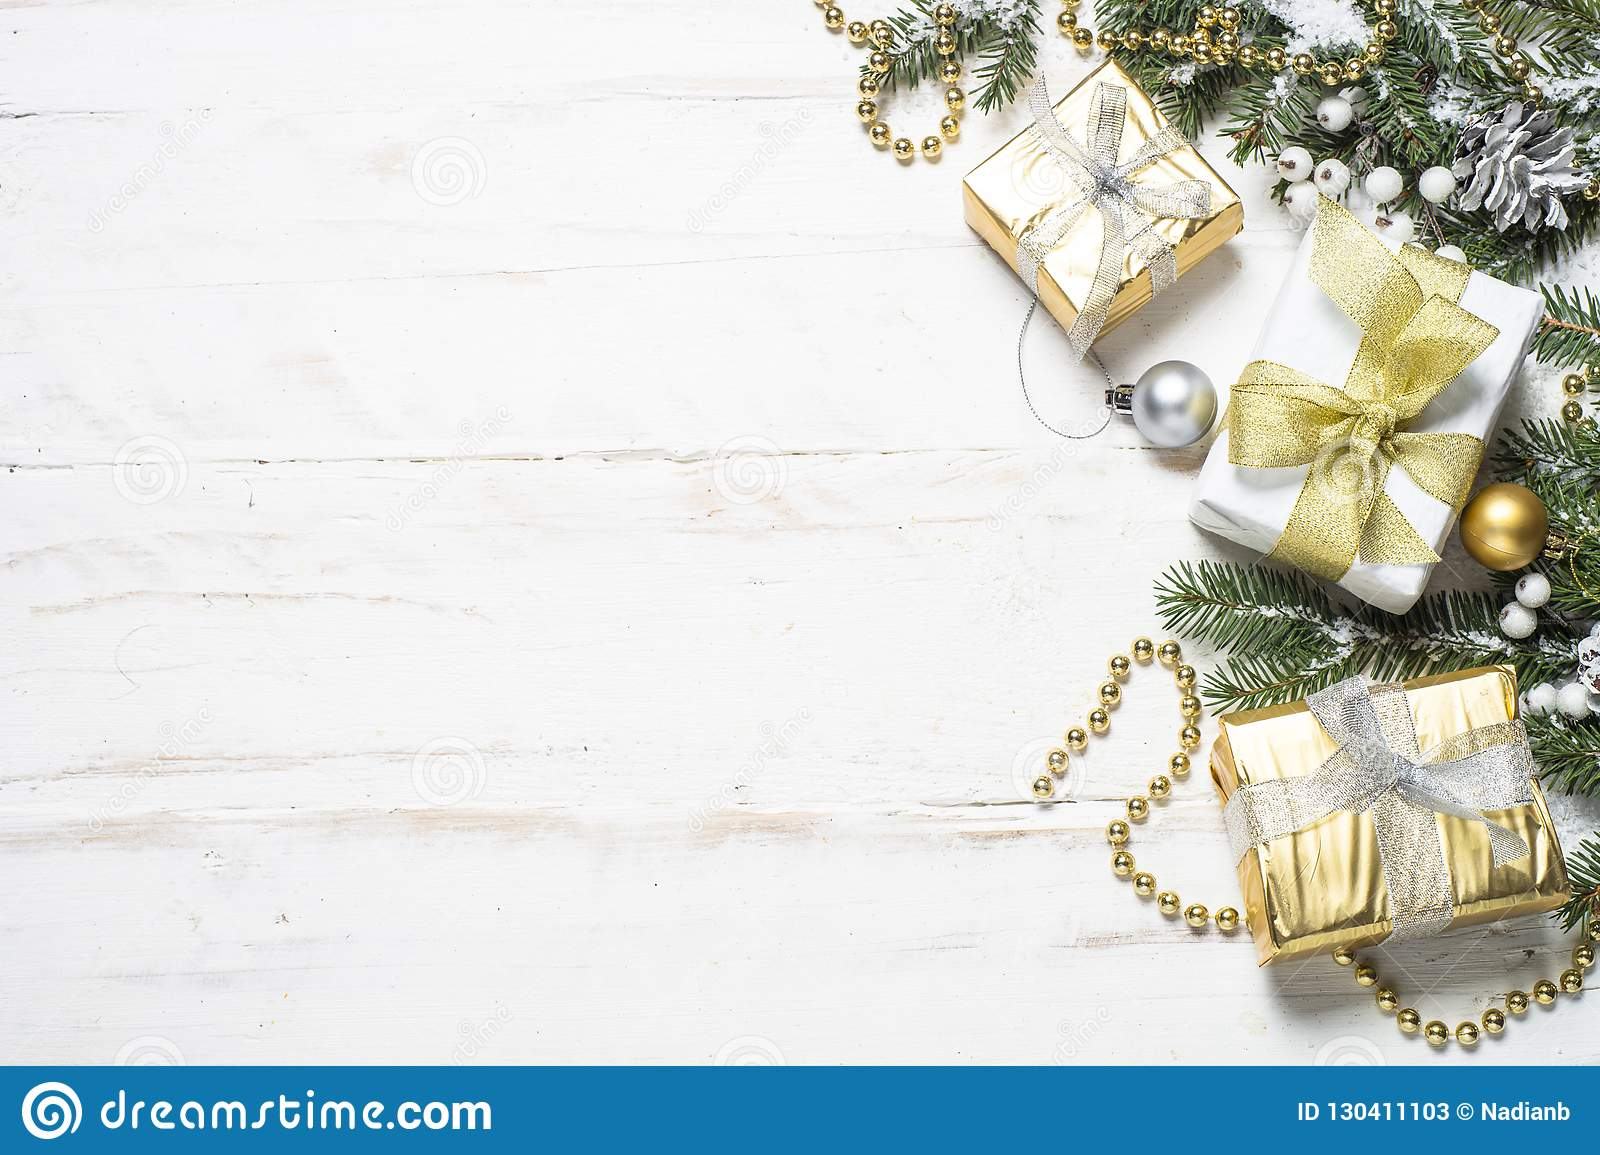 c242833867ae Christmas Background With Gold And Silver Decorations On White ...